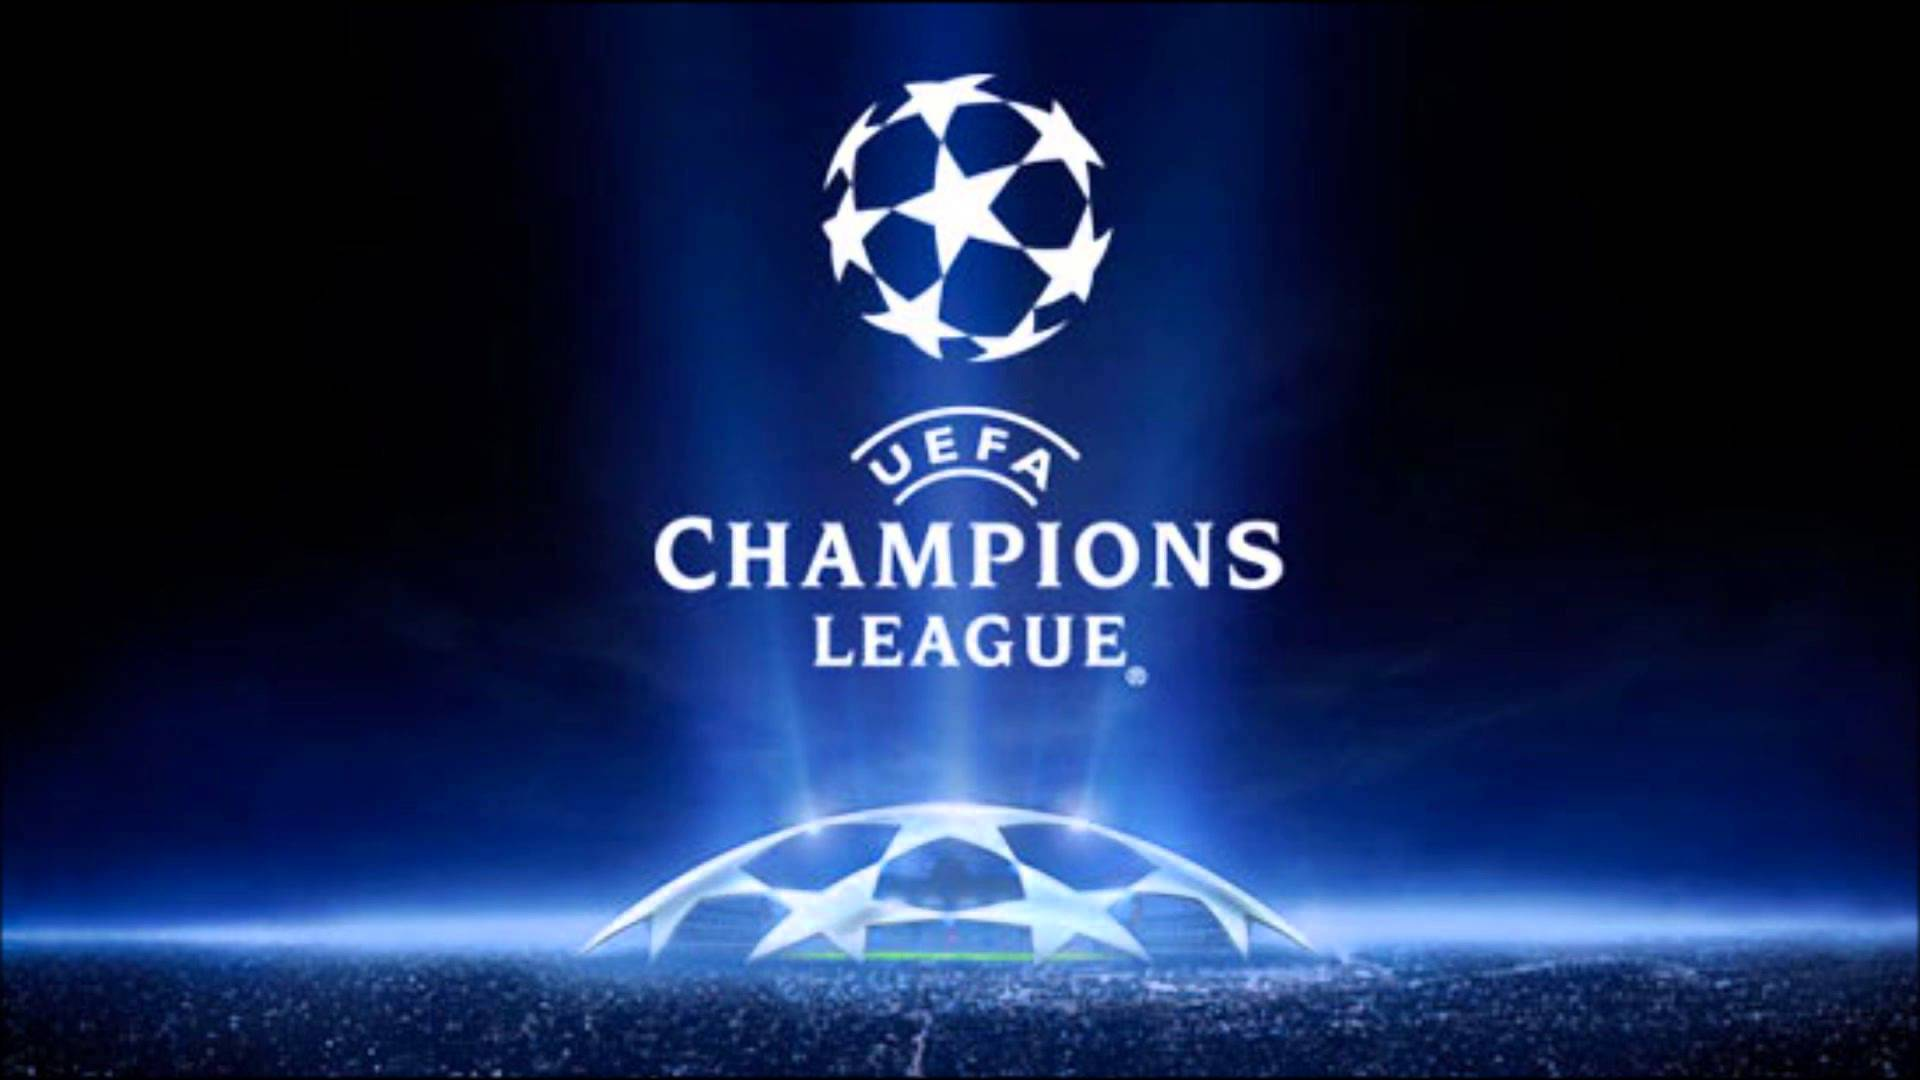 champions league - photo #30